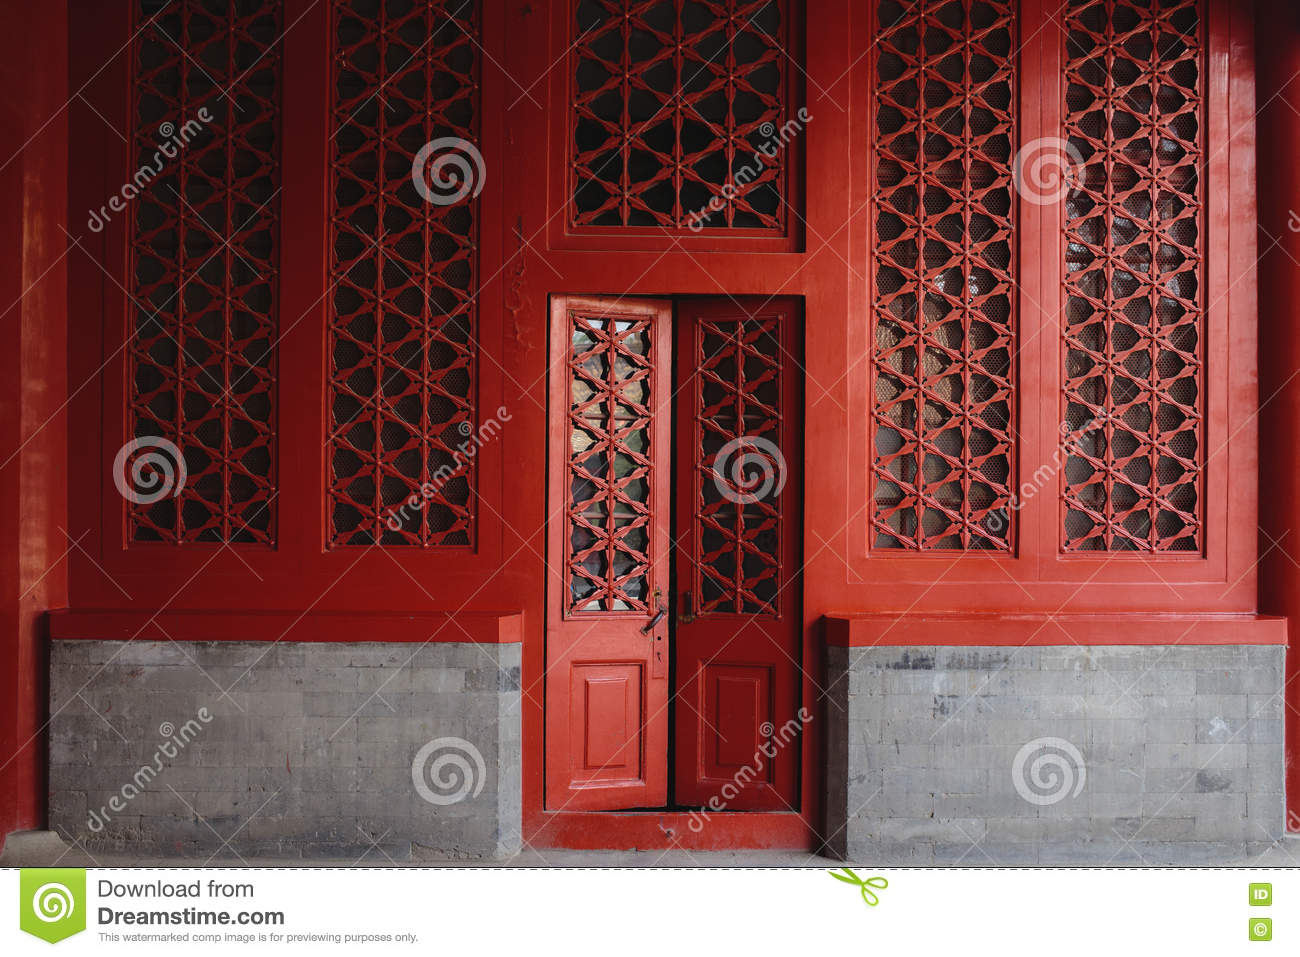 The door and windows, made in traditional chinese style